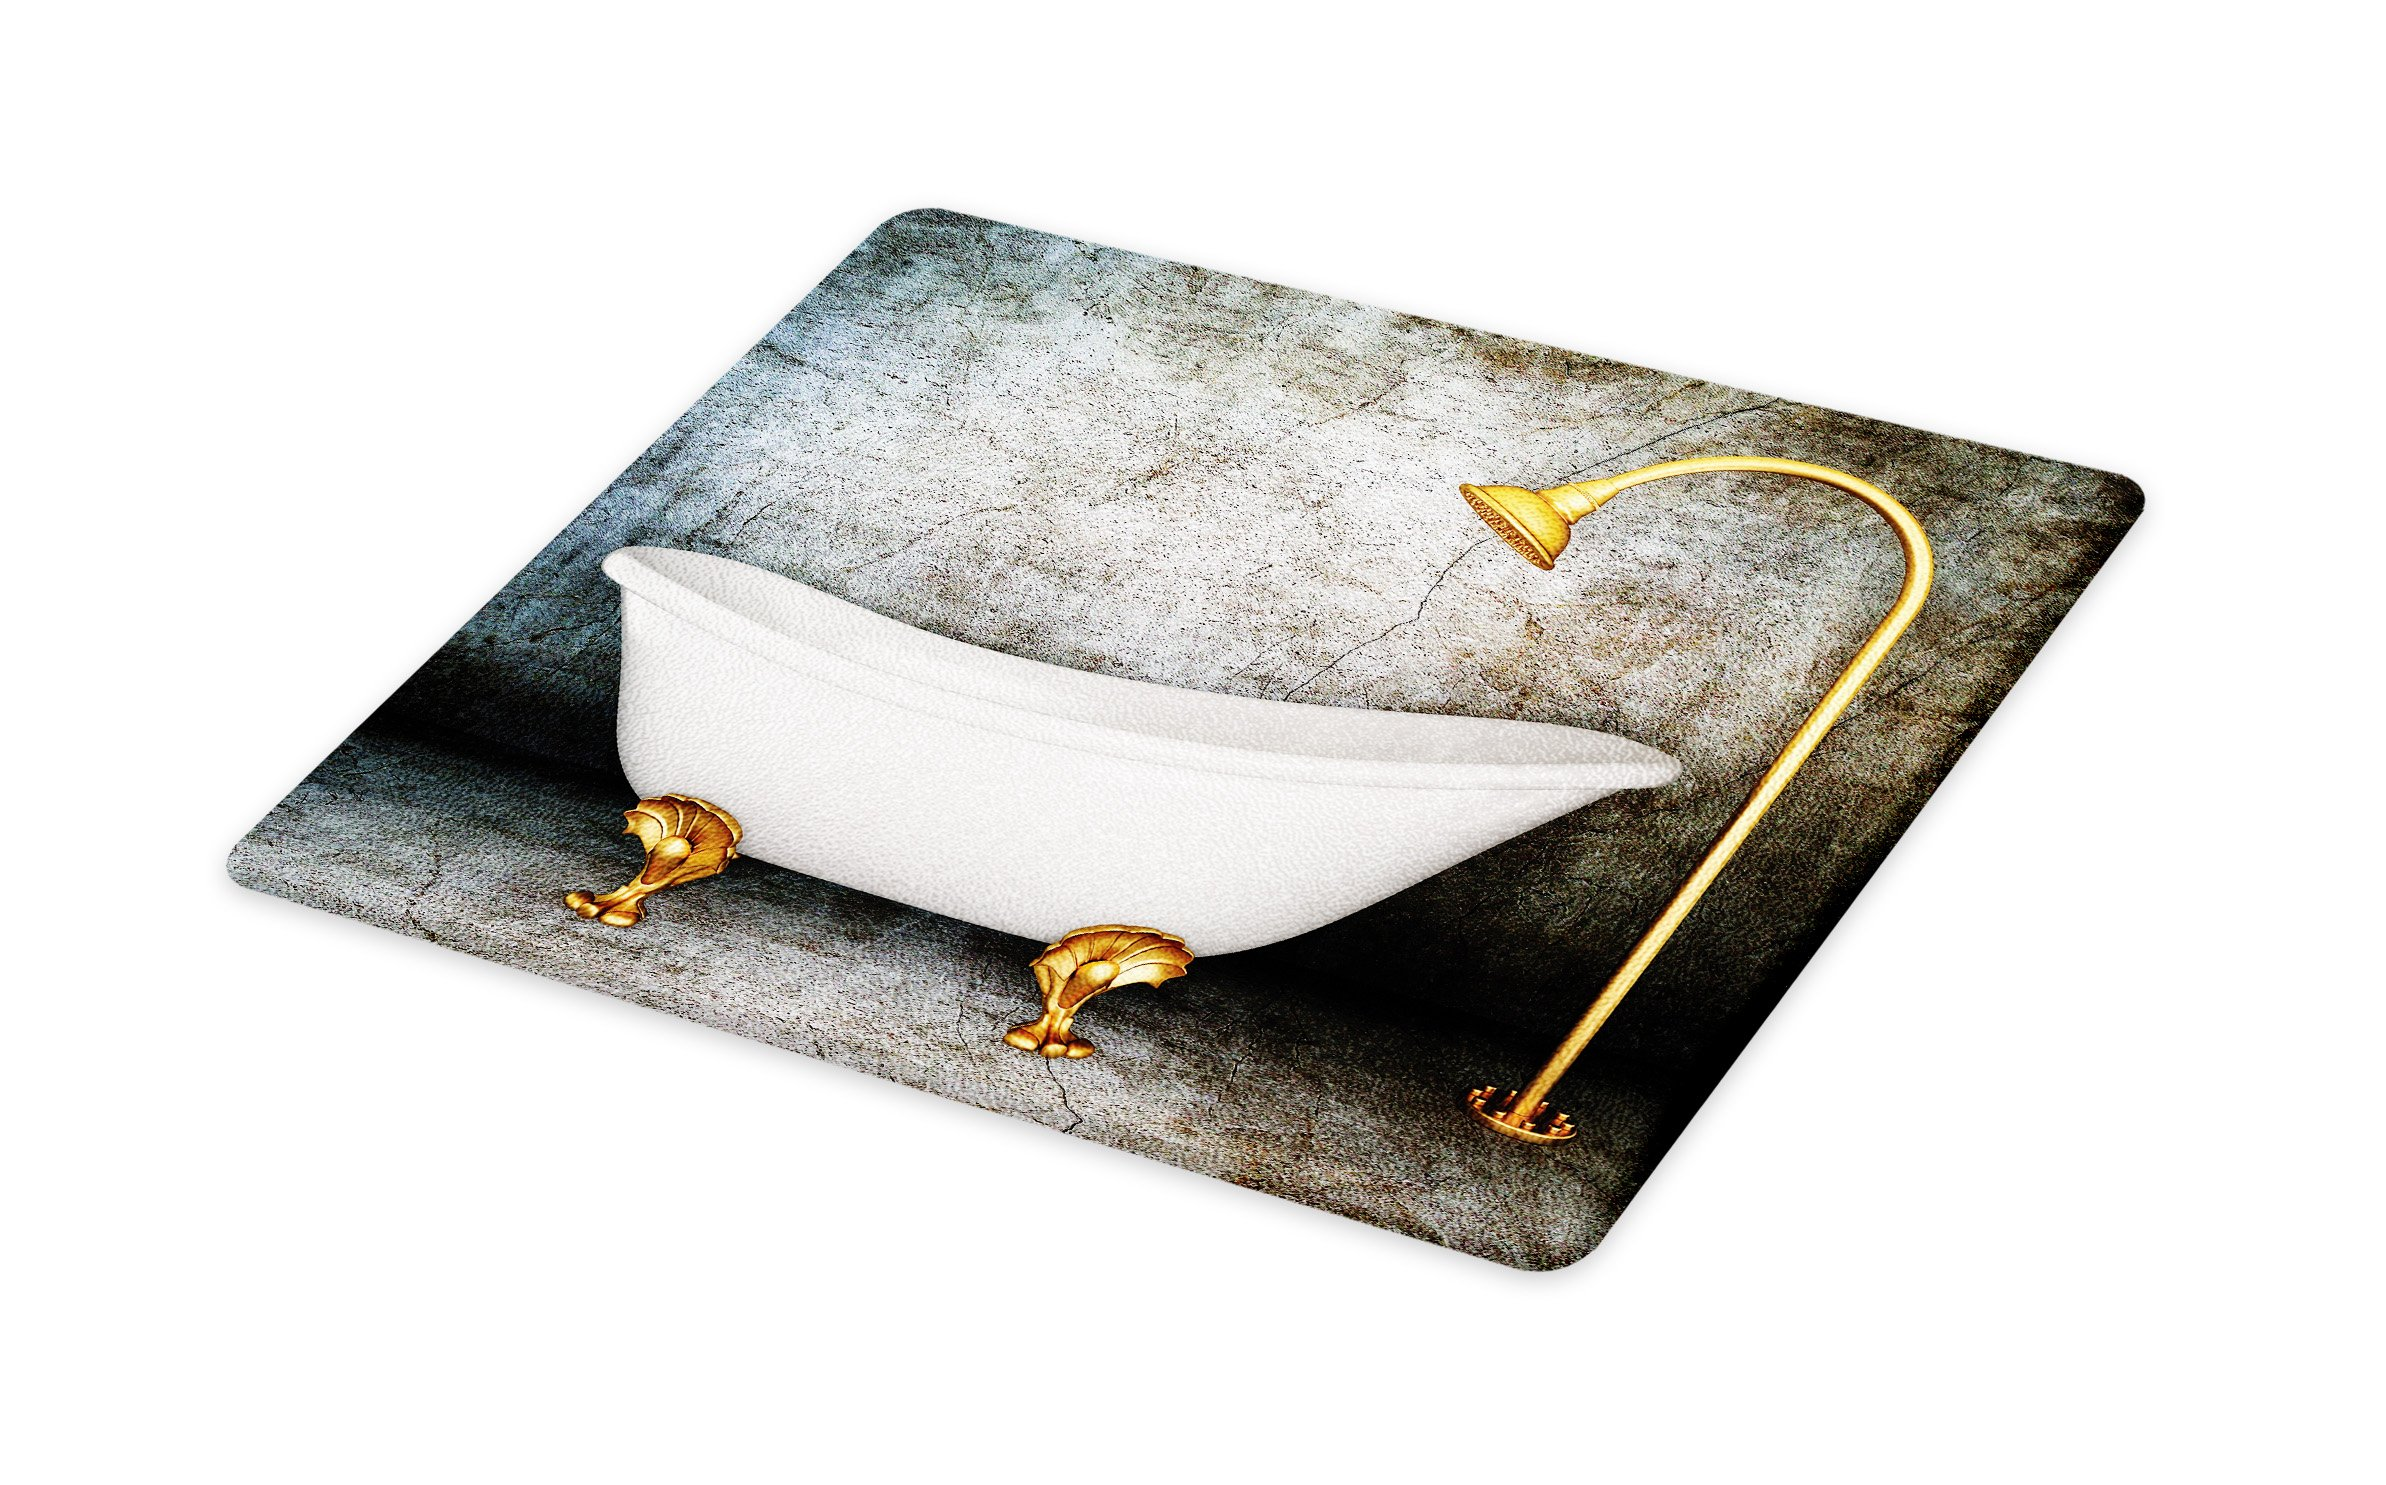 Lunarable Retro Cutting Board, Vintage Bathtub in Room with Grunge Wall Lifestyle Resting Spa Theme Art Print, Decorative Tempered Glass Cutting and Serving Board, Large Size, Grey White Gold